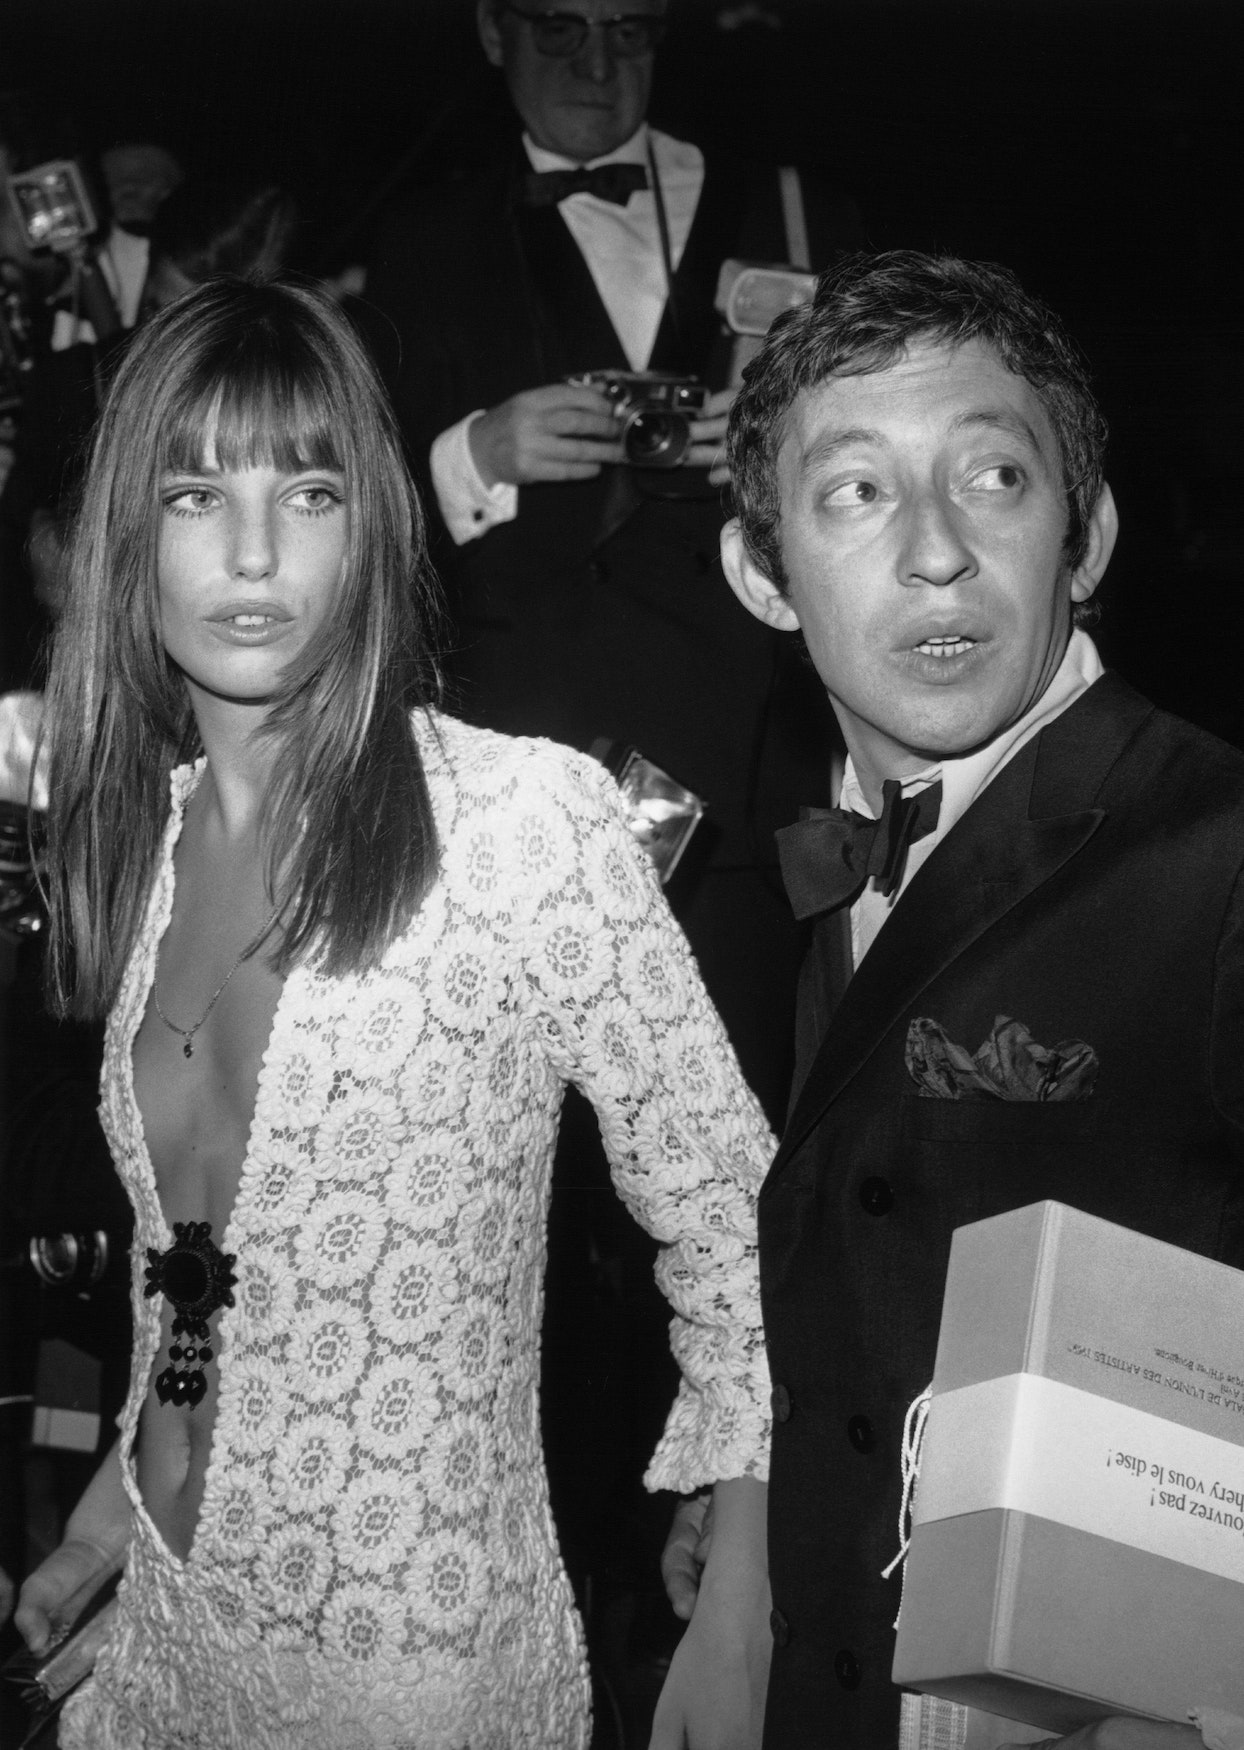 Jane Birkin wearing the now-iconic crochet maxi dress to attend a gala with Serge Gainsbourg. (Photo credit: Getty Images)